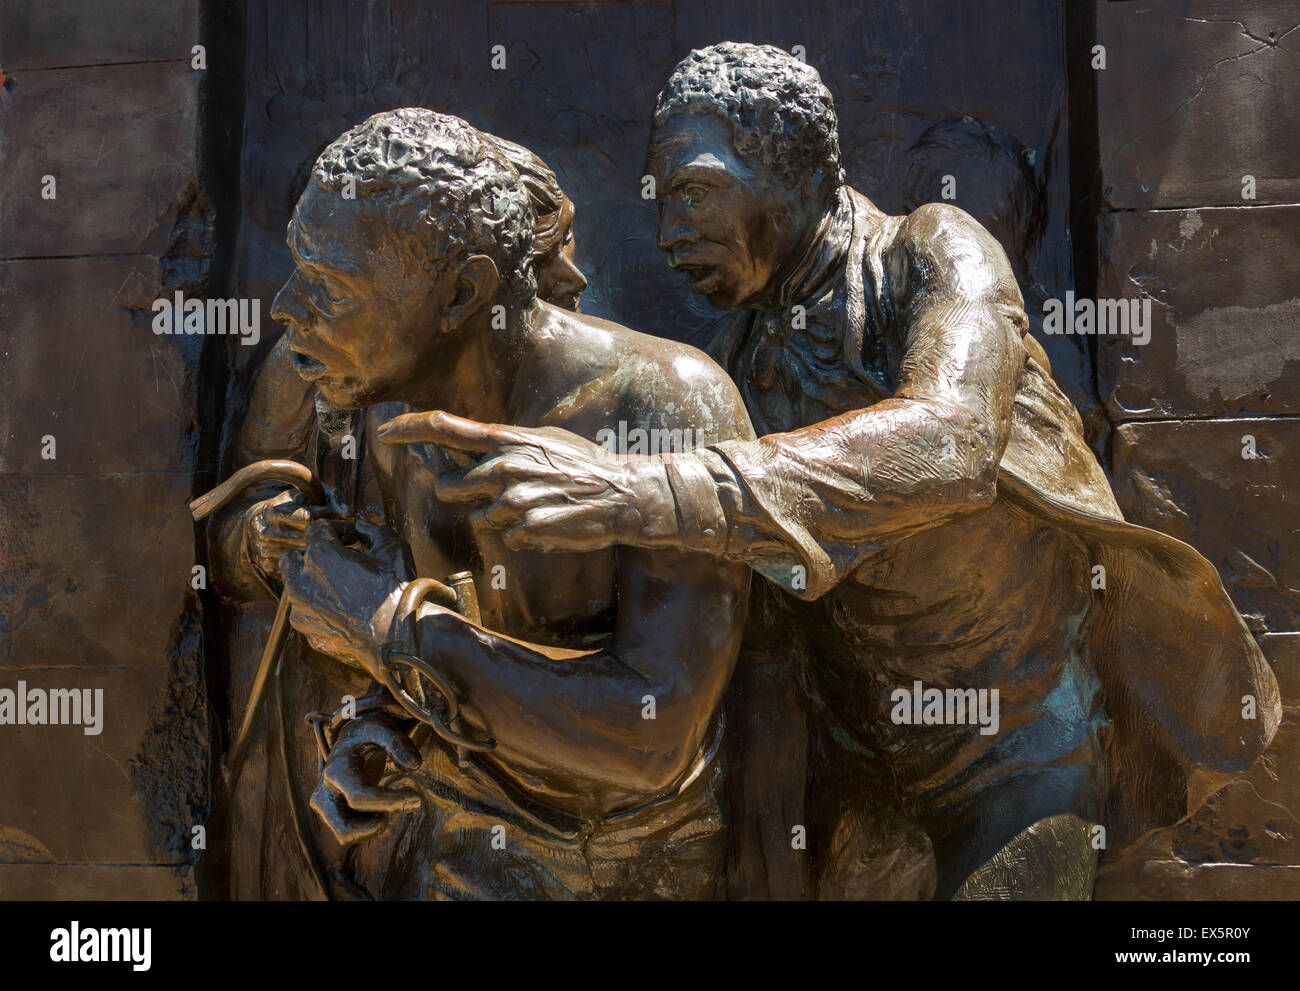 Jerry rescue monument in Syracuse NY - Stock Image